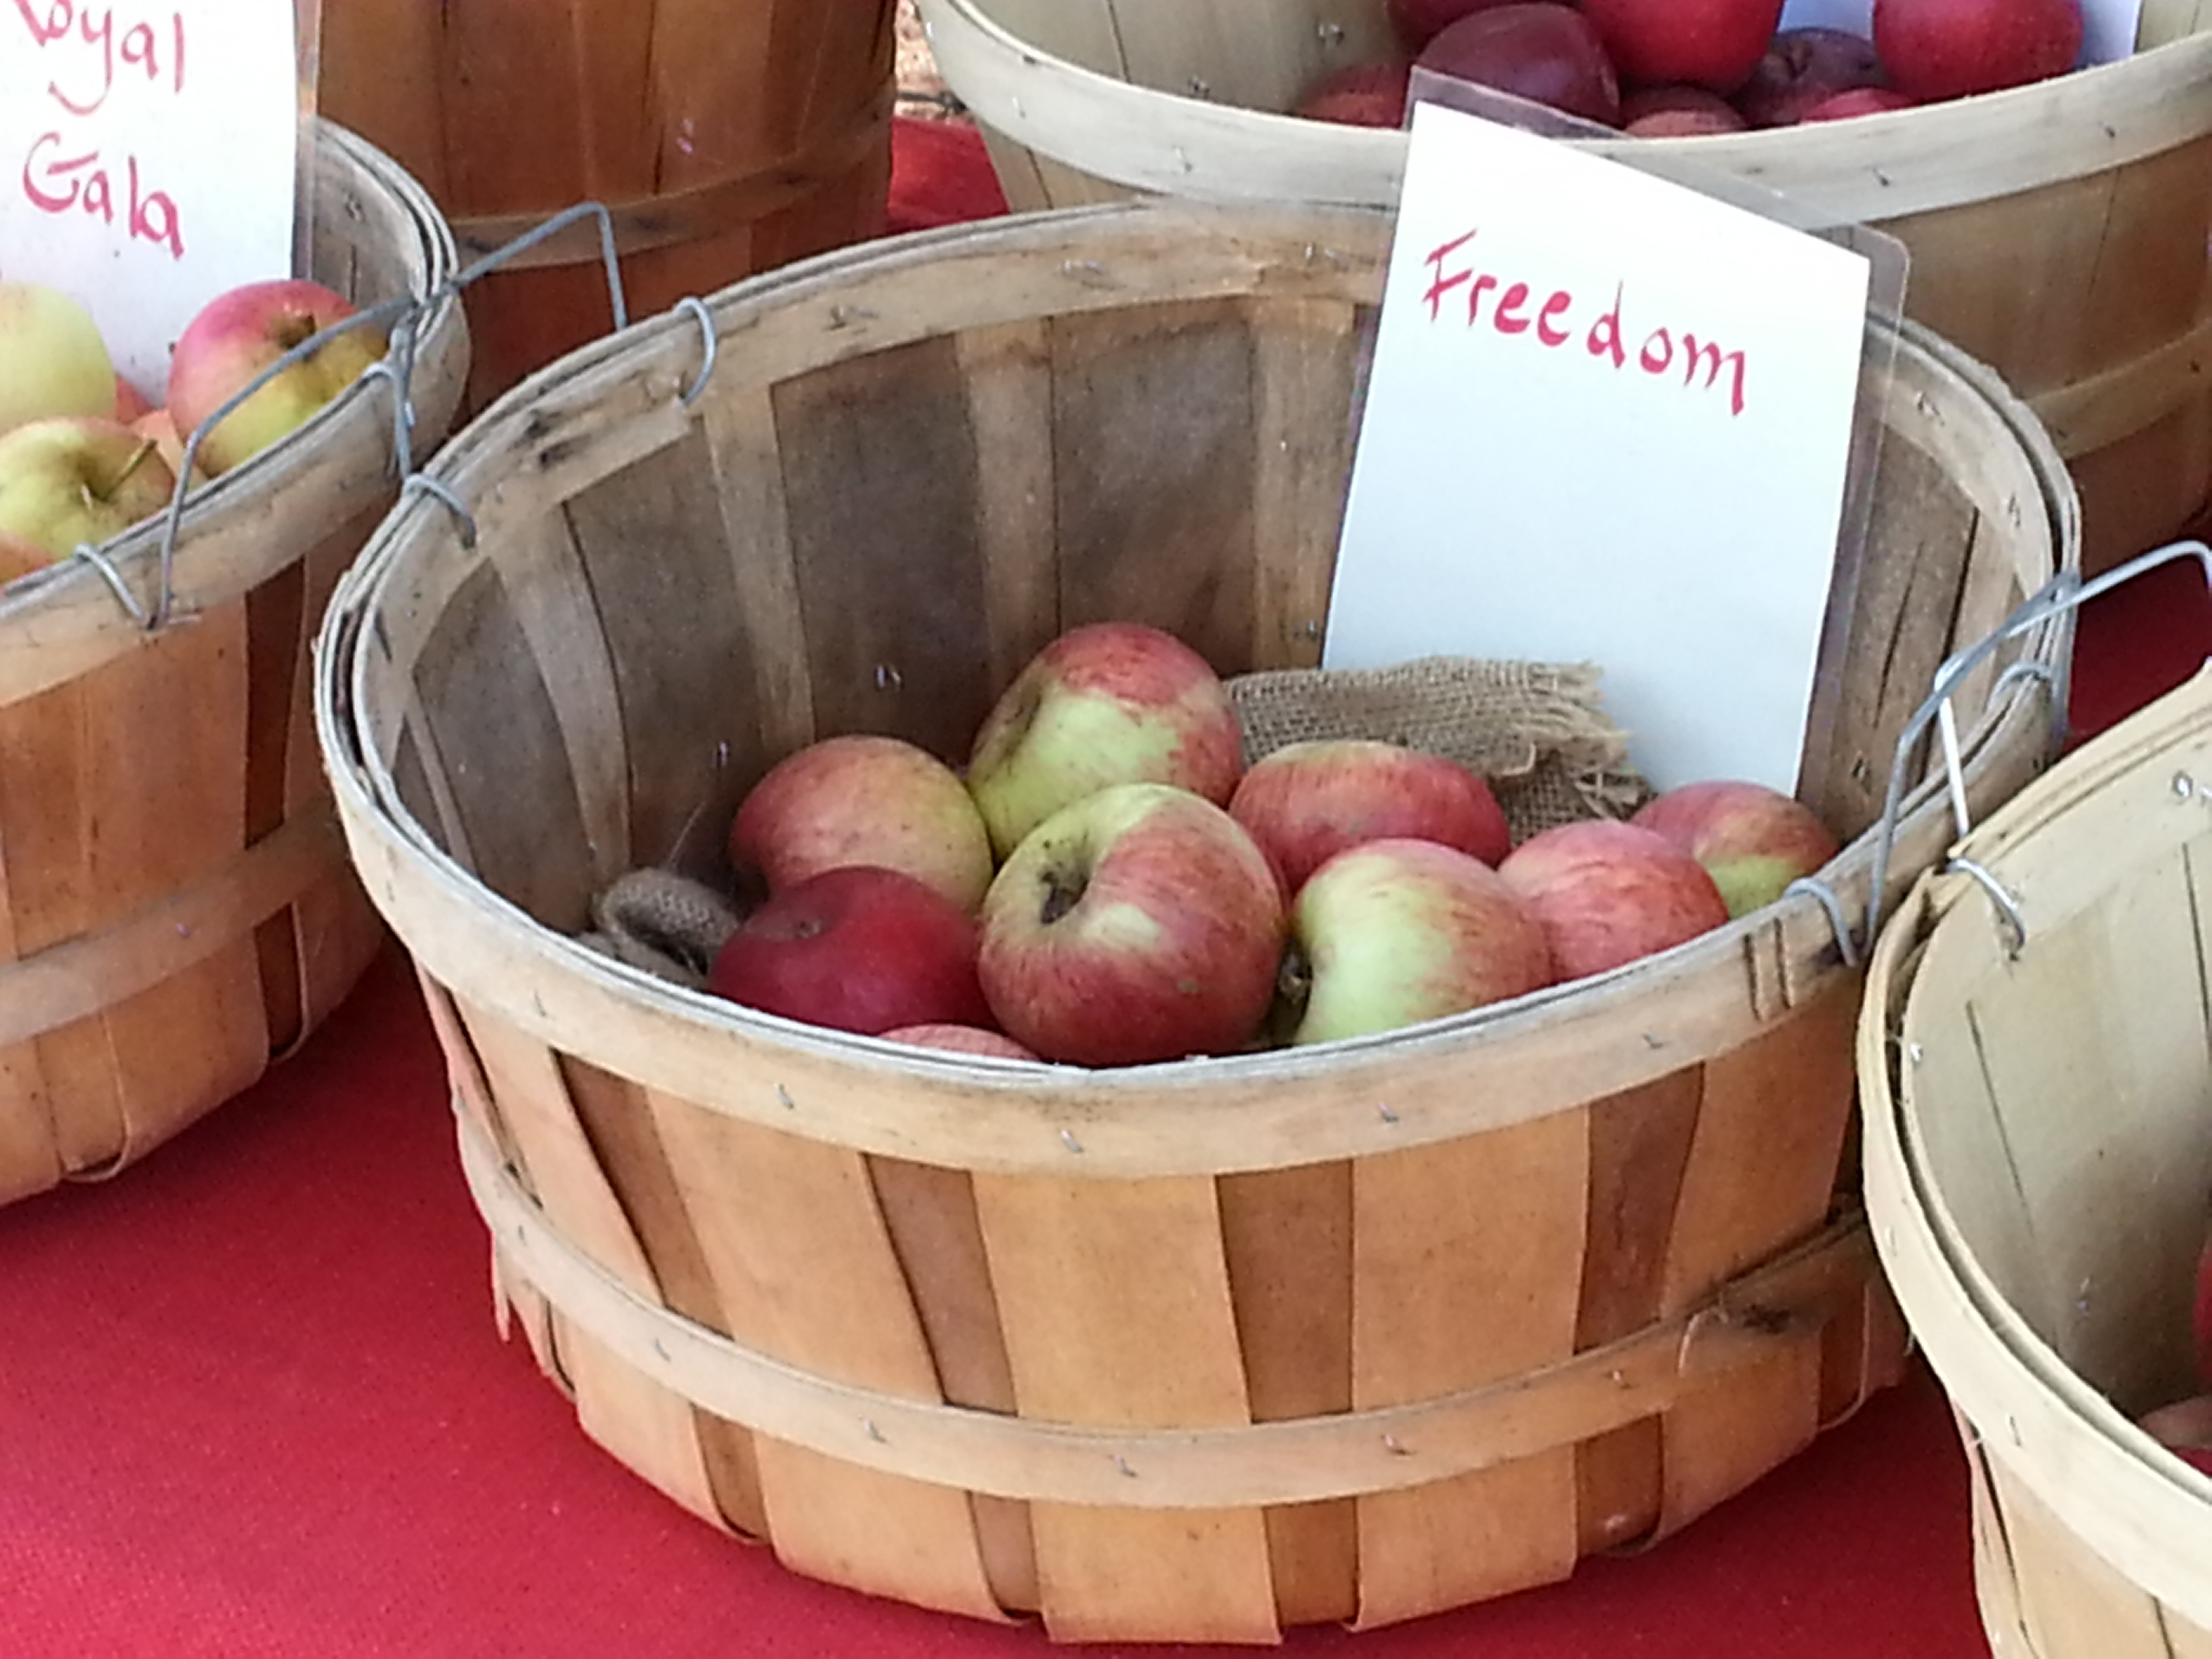 Bushel of Freedom Apples